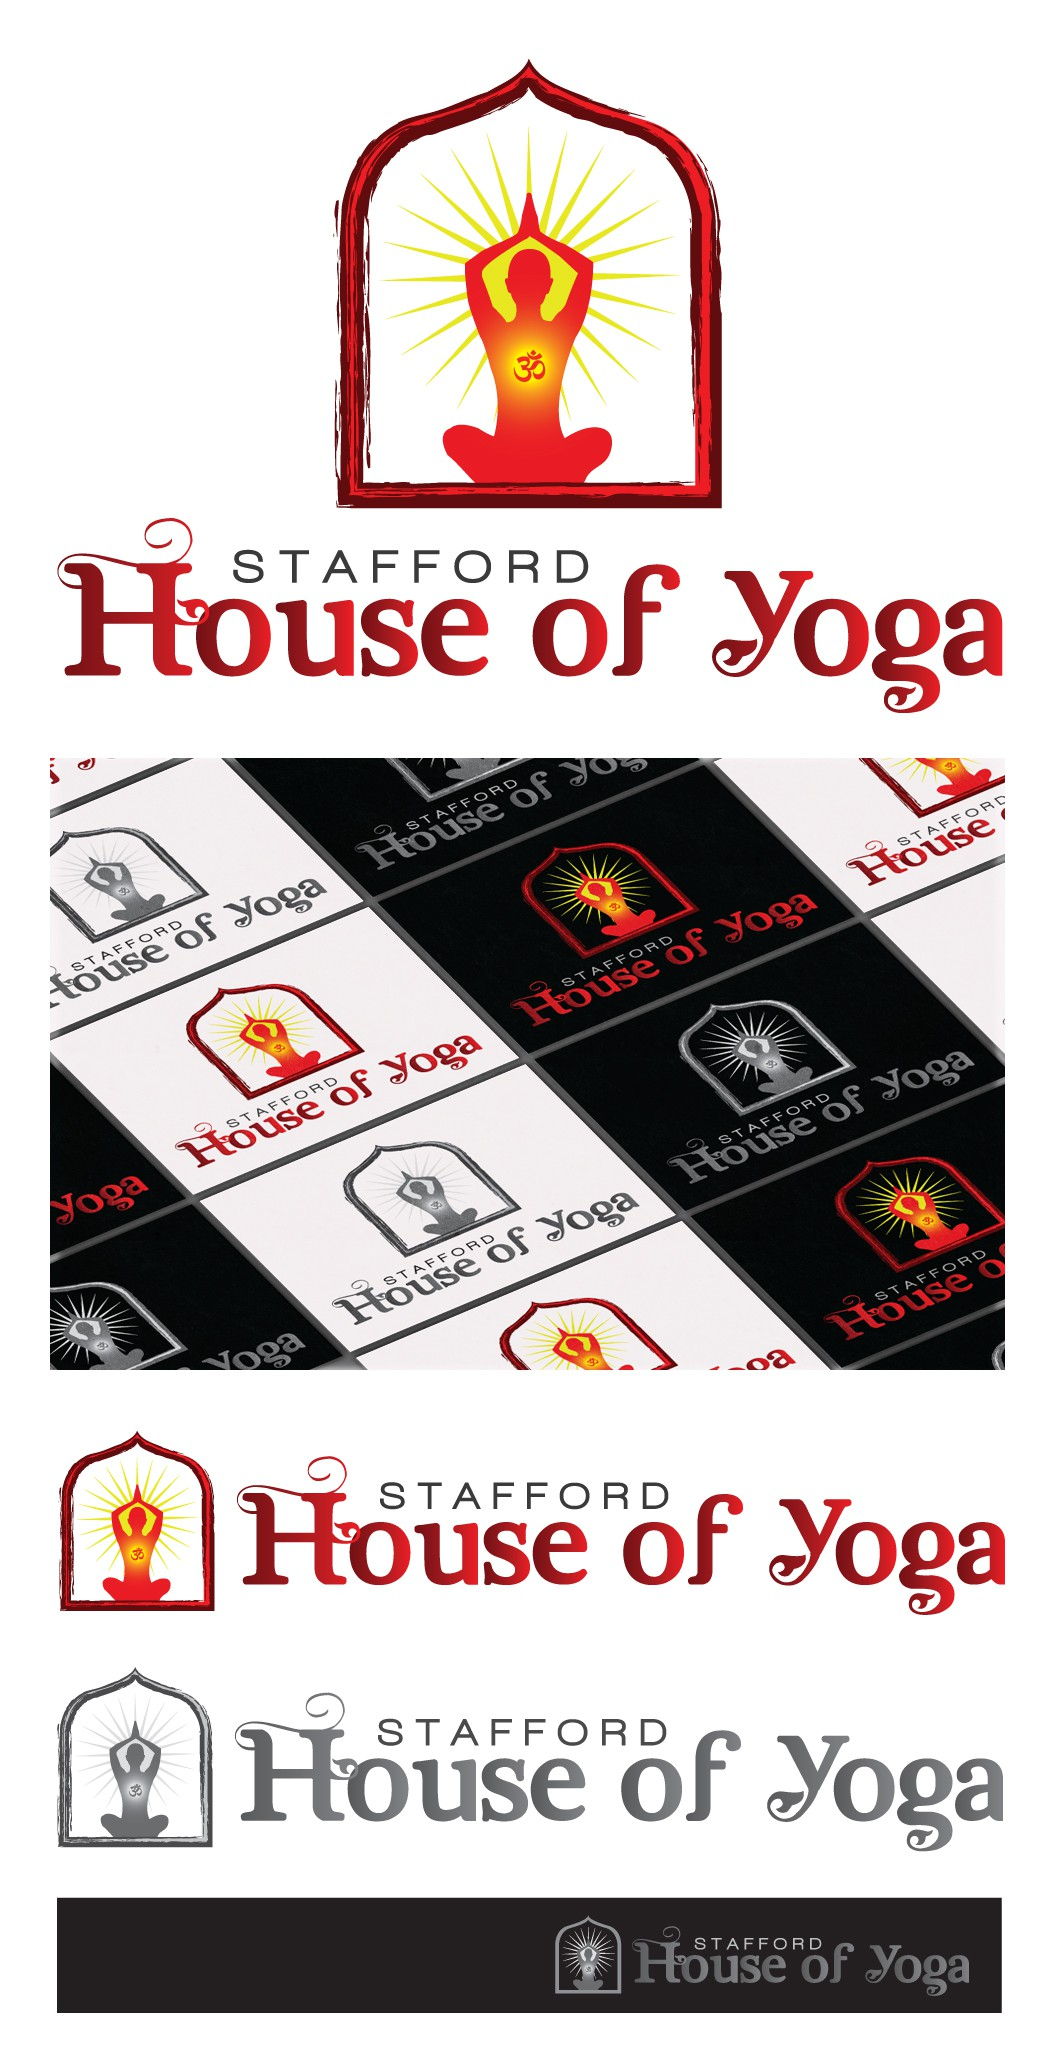 Create a logo for Stafford House of Yoga